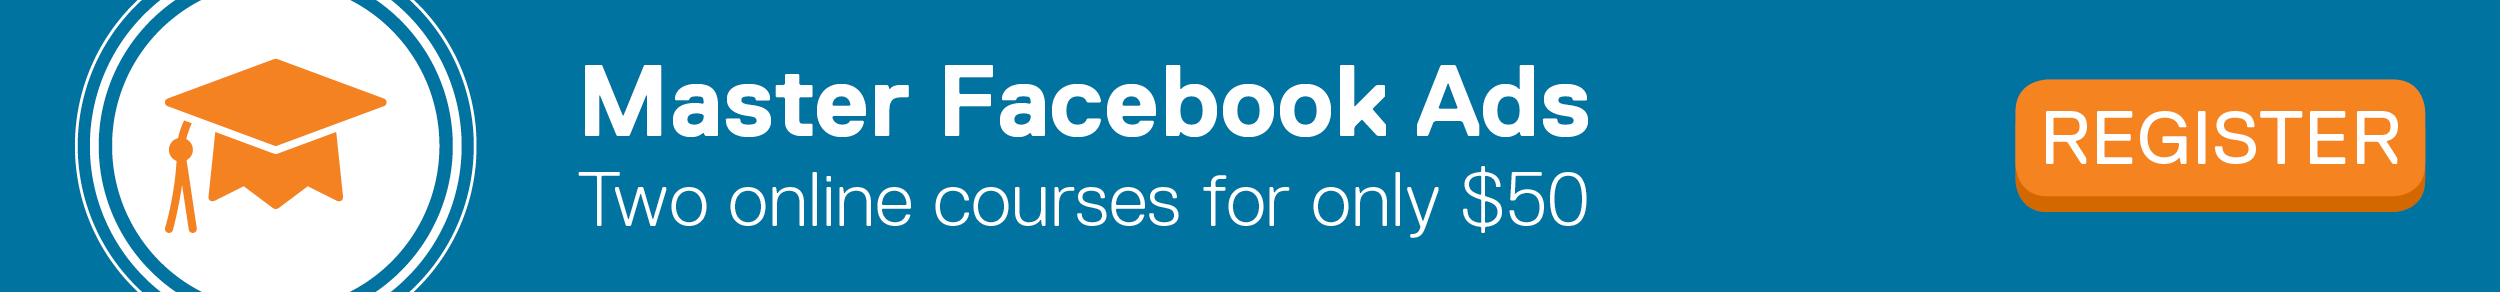 Master Facebook Ads: Two online courses for only $50. REGISTER.